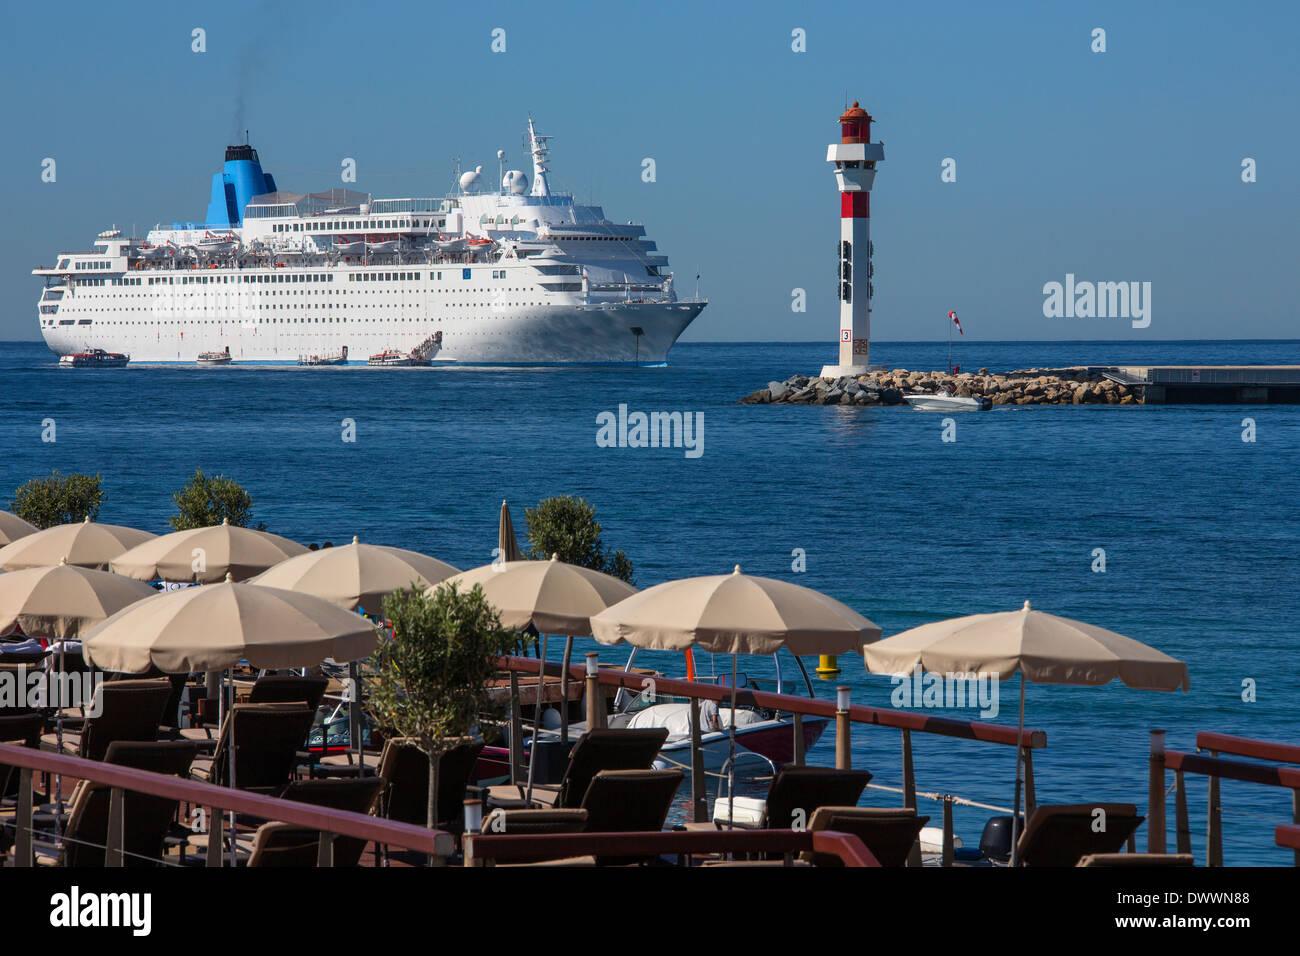 Cruise Liner moored just off the beach at Cannes on the Cote d'Azur in the South of France. - Stock Image